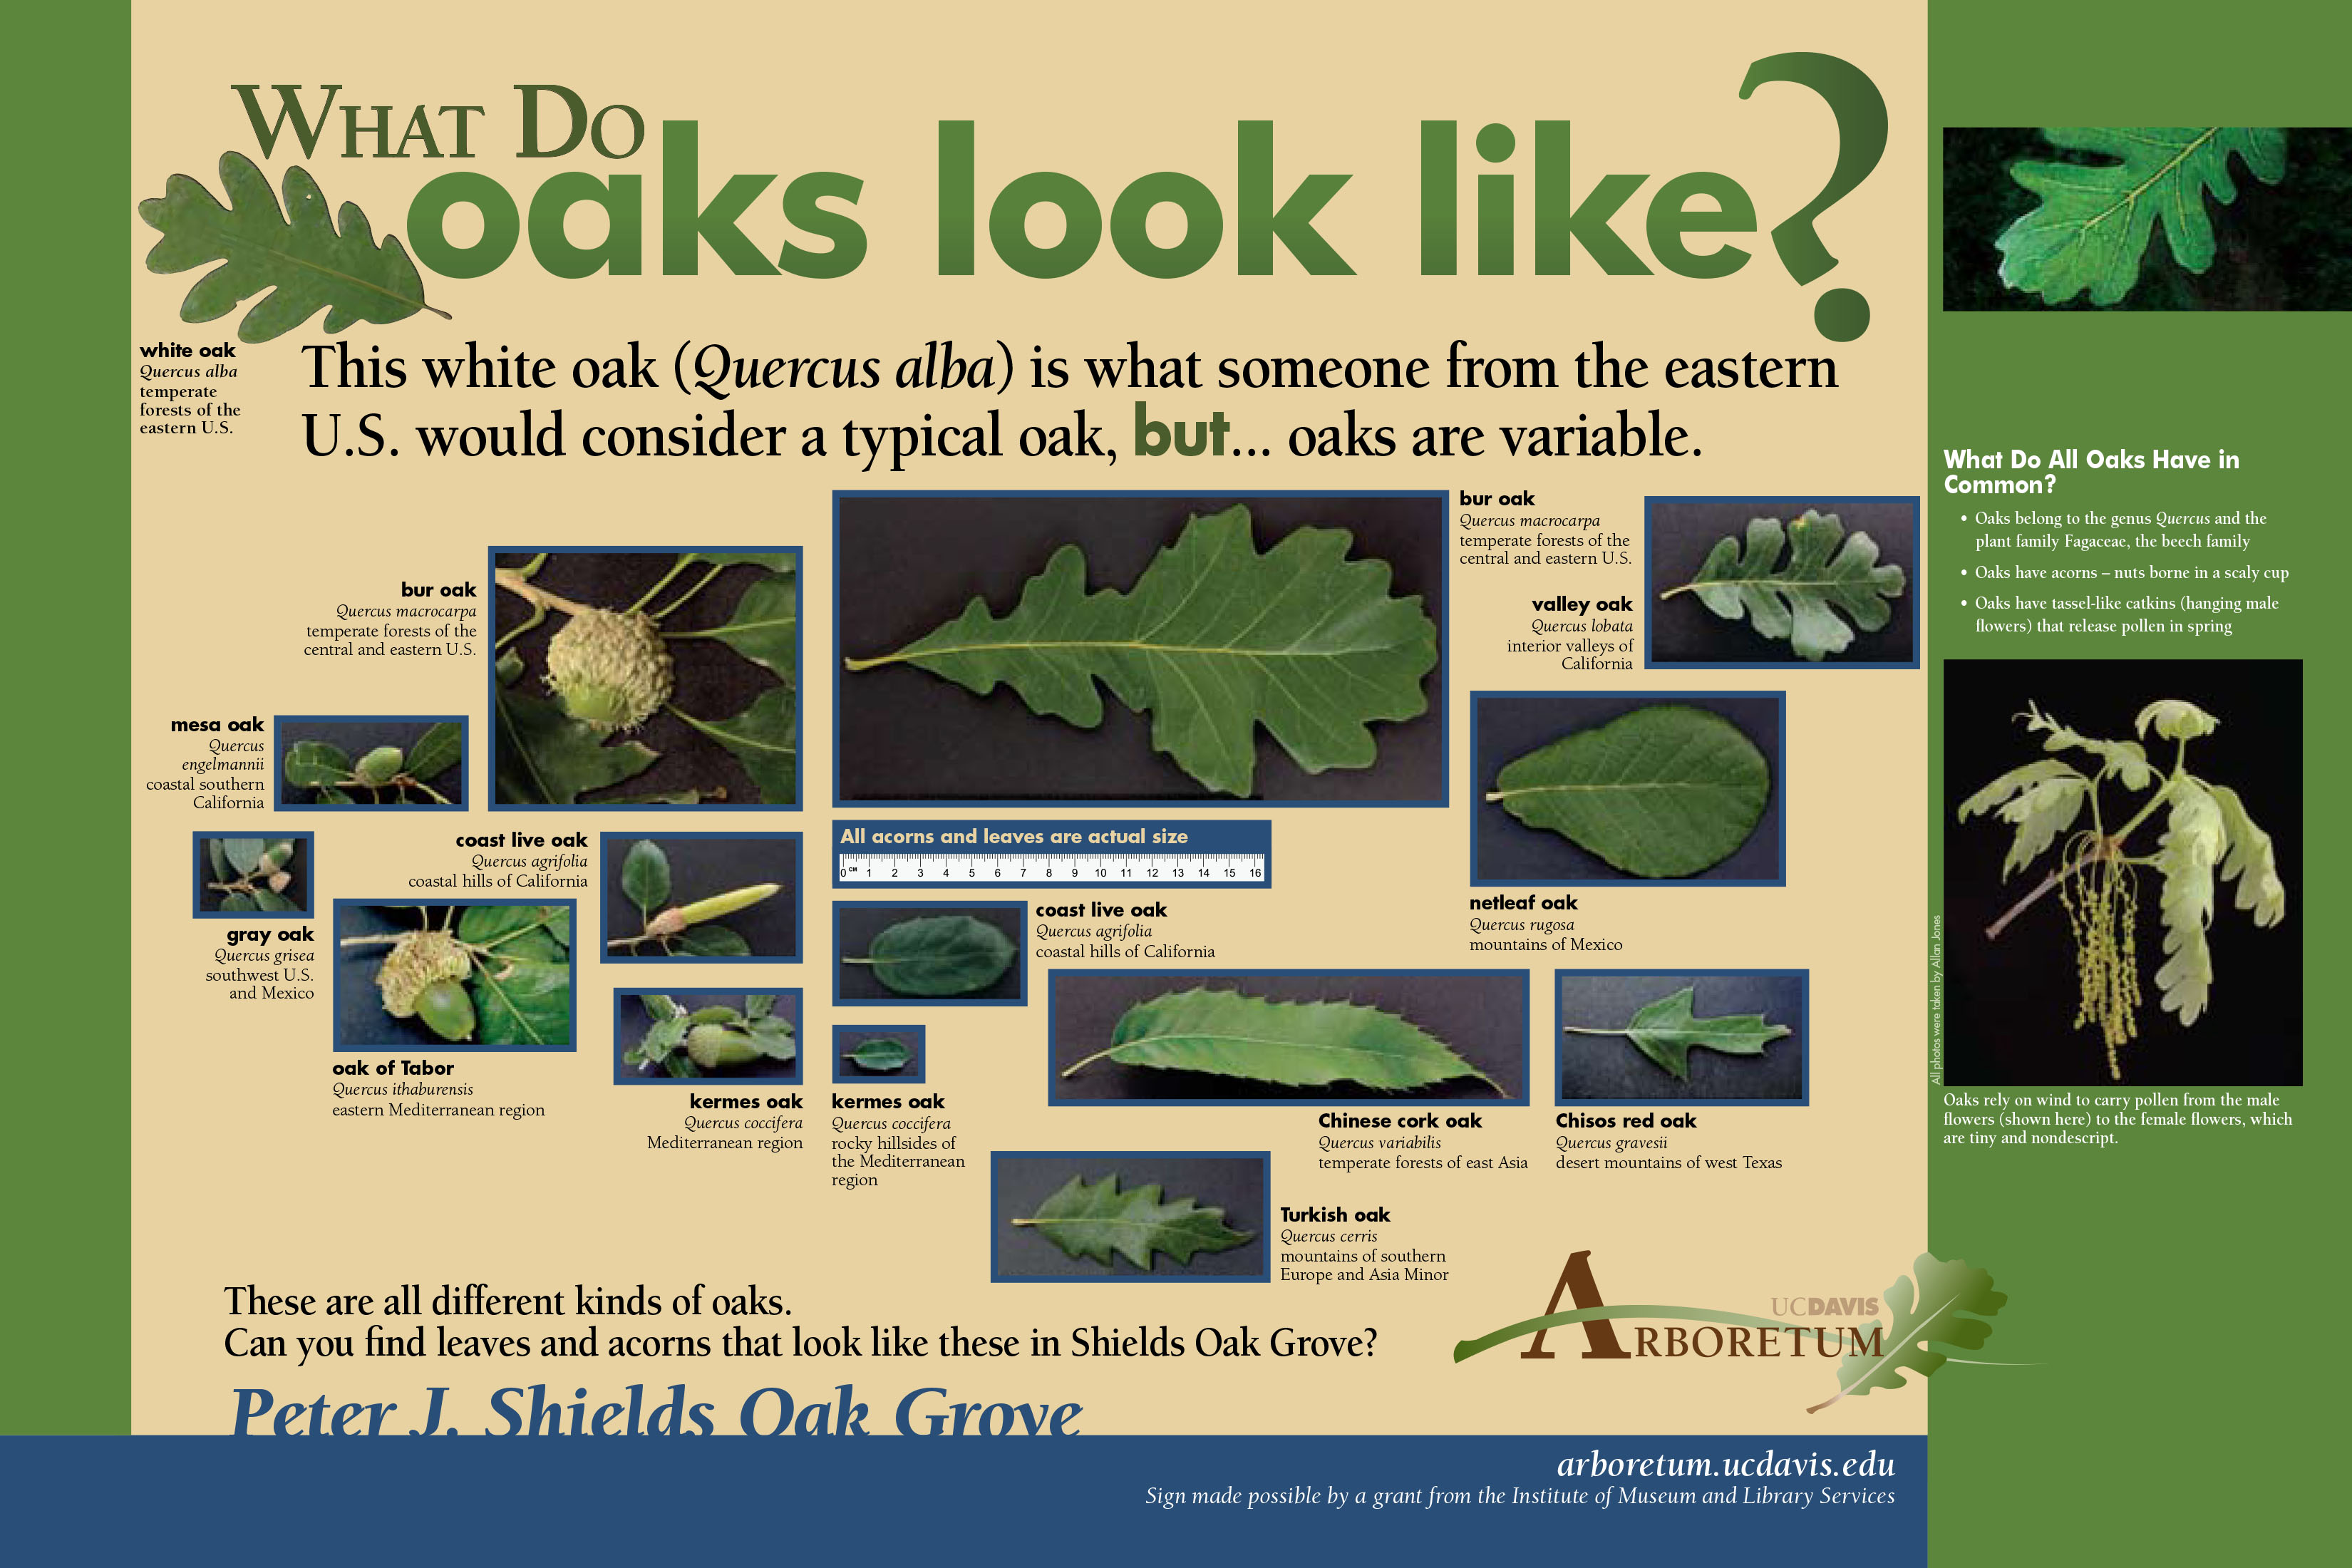 Preview of Peter J. Shields Oak Grove exhibit signs